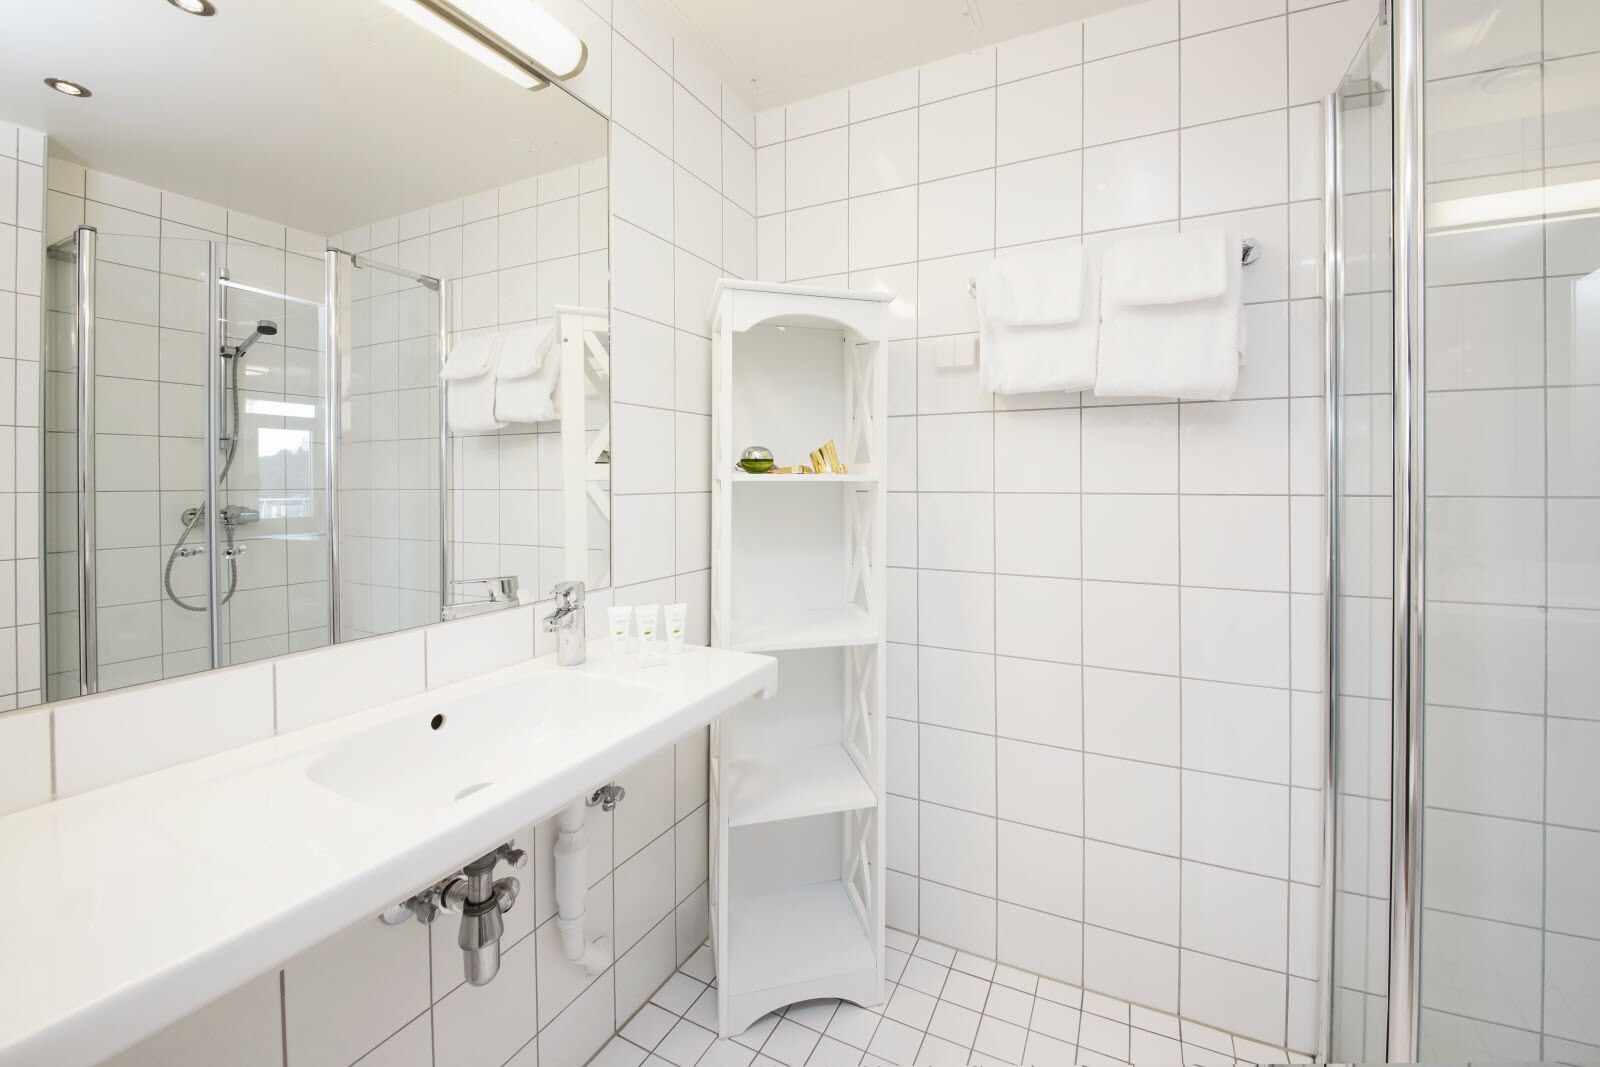 Scandic Havna Tjome, Tjome, suite, deluxe, bathroom